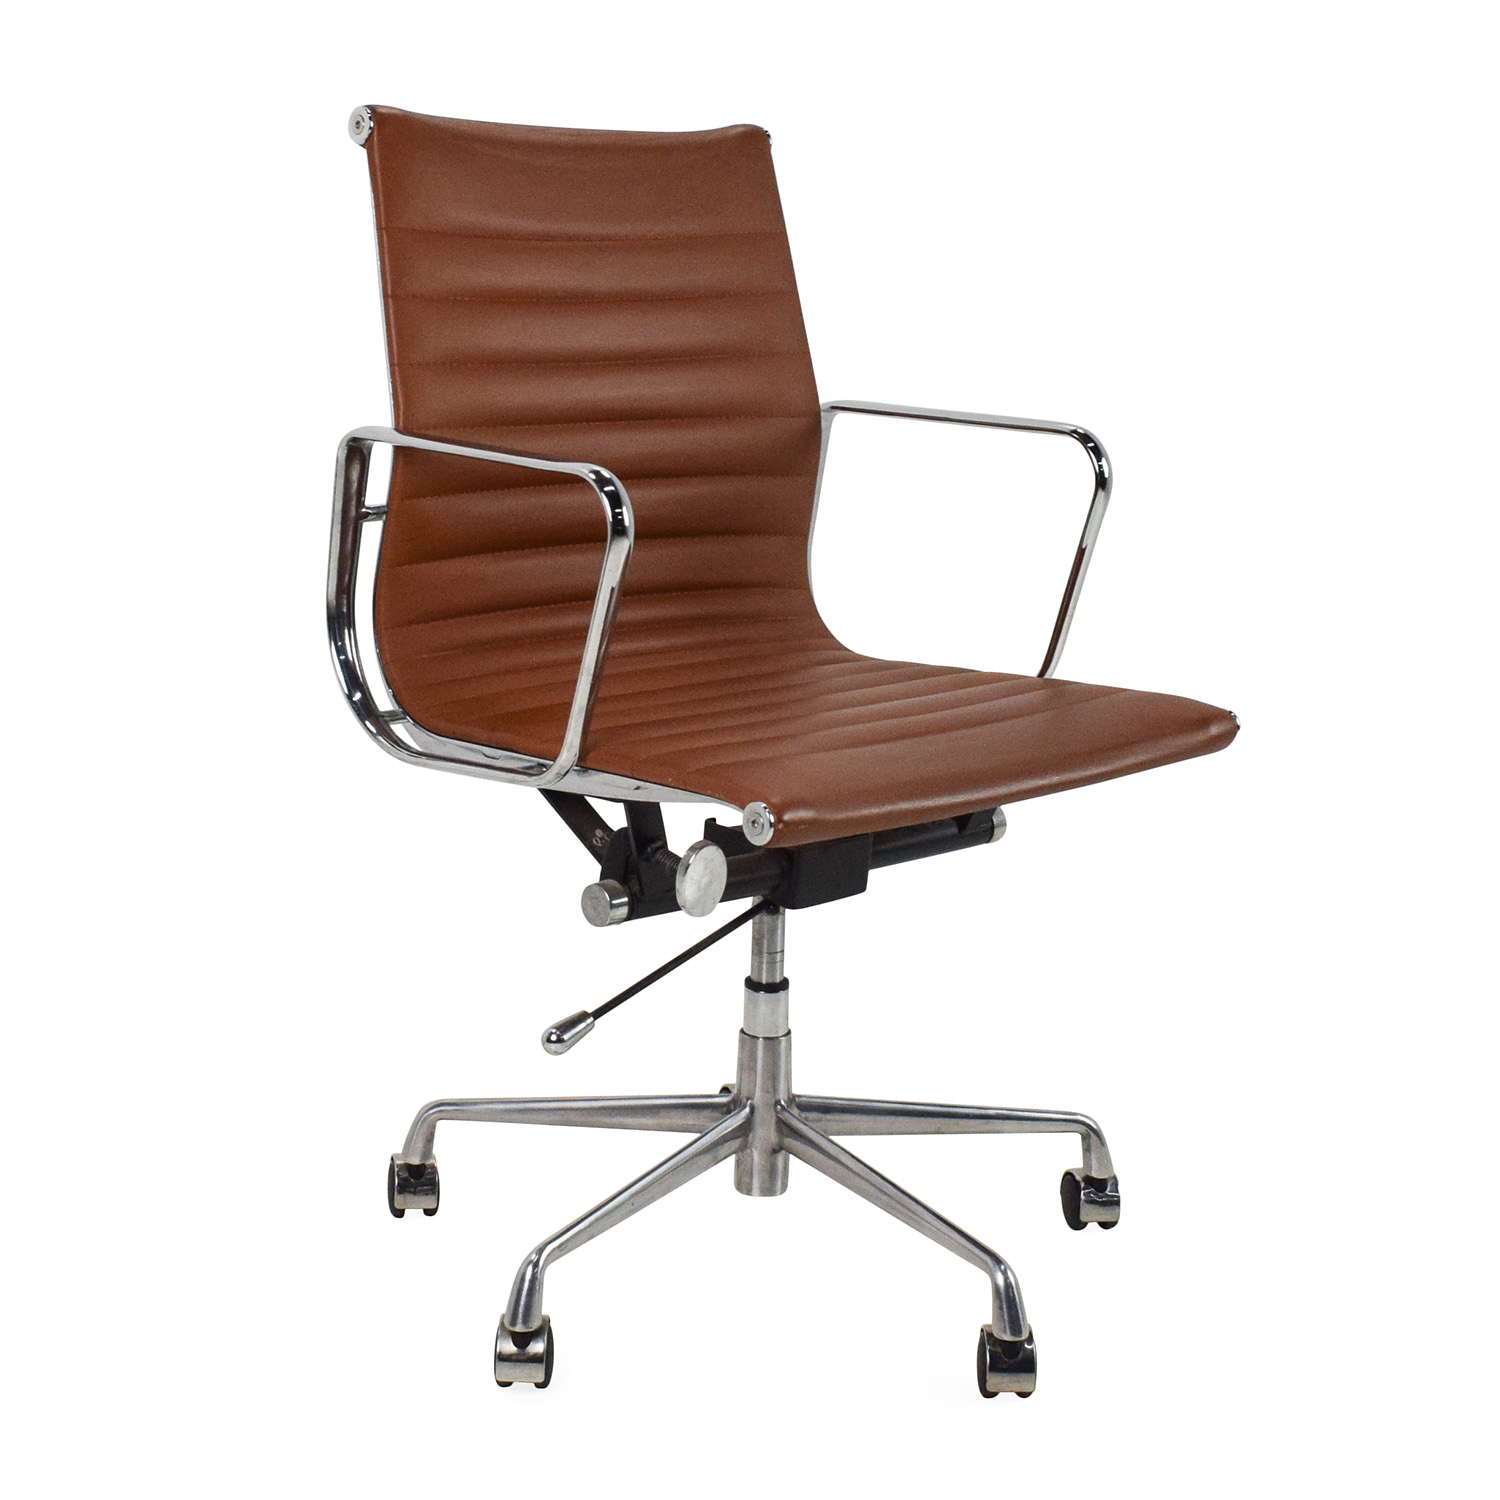 ergonomic chair brand twin sleep 68 off unknown chrome office chairs